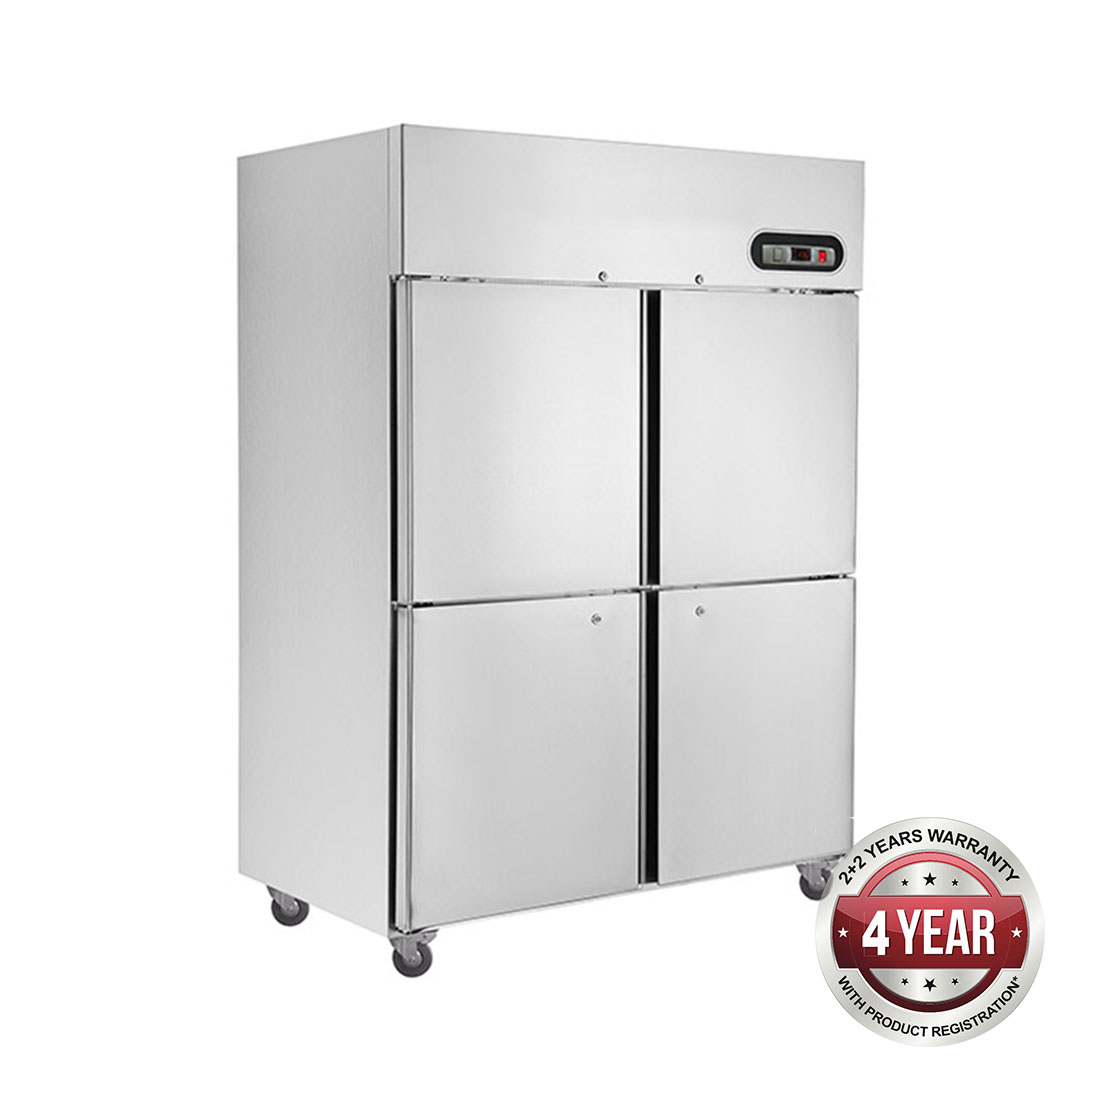 SUF1000 TROPICAL Thermaster 4 x ½ door SS Freezer